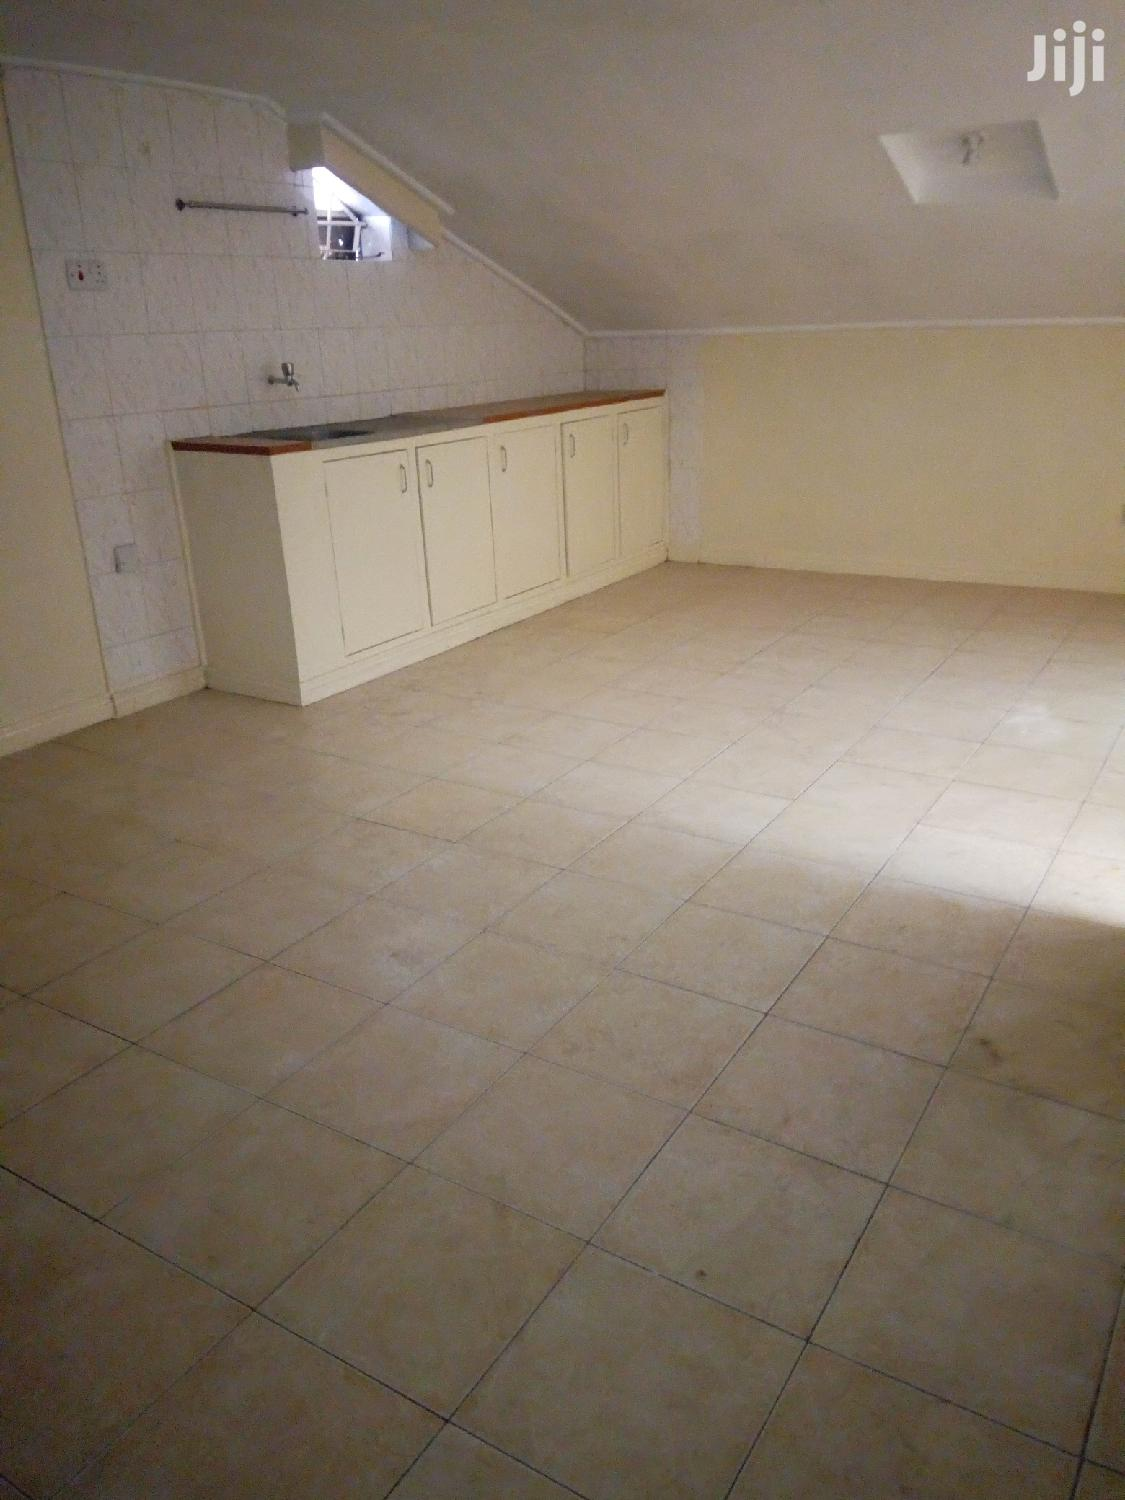 Spacious One Bedroomed to Let in Nairobi West | Houses & Apartments For Rent for sale in Nairobi West, Nairobi, Kenya